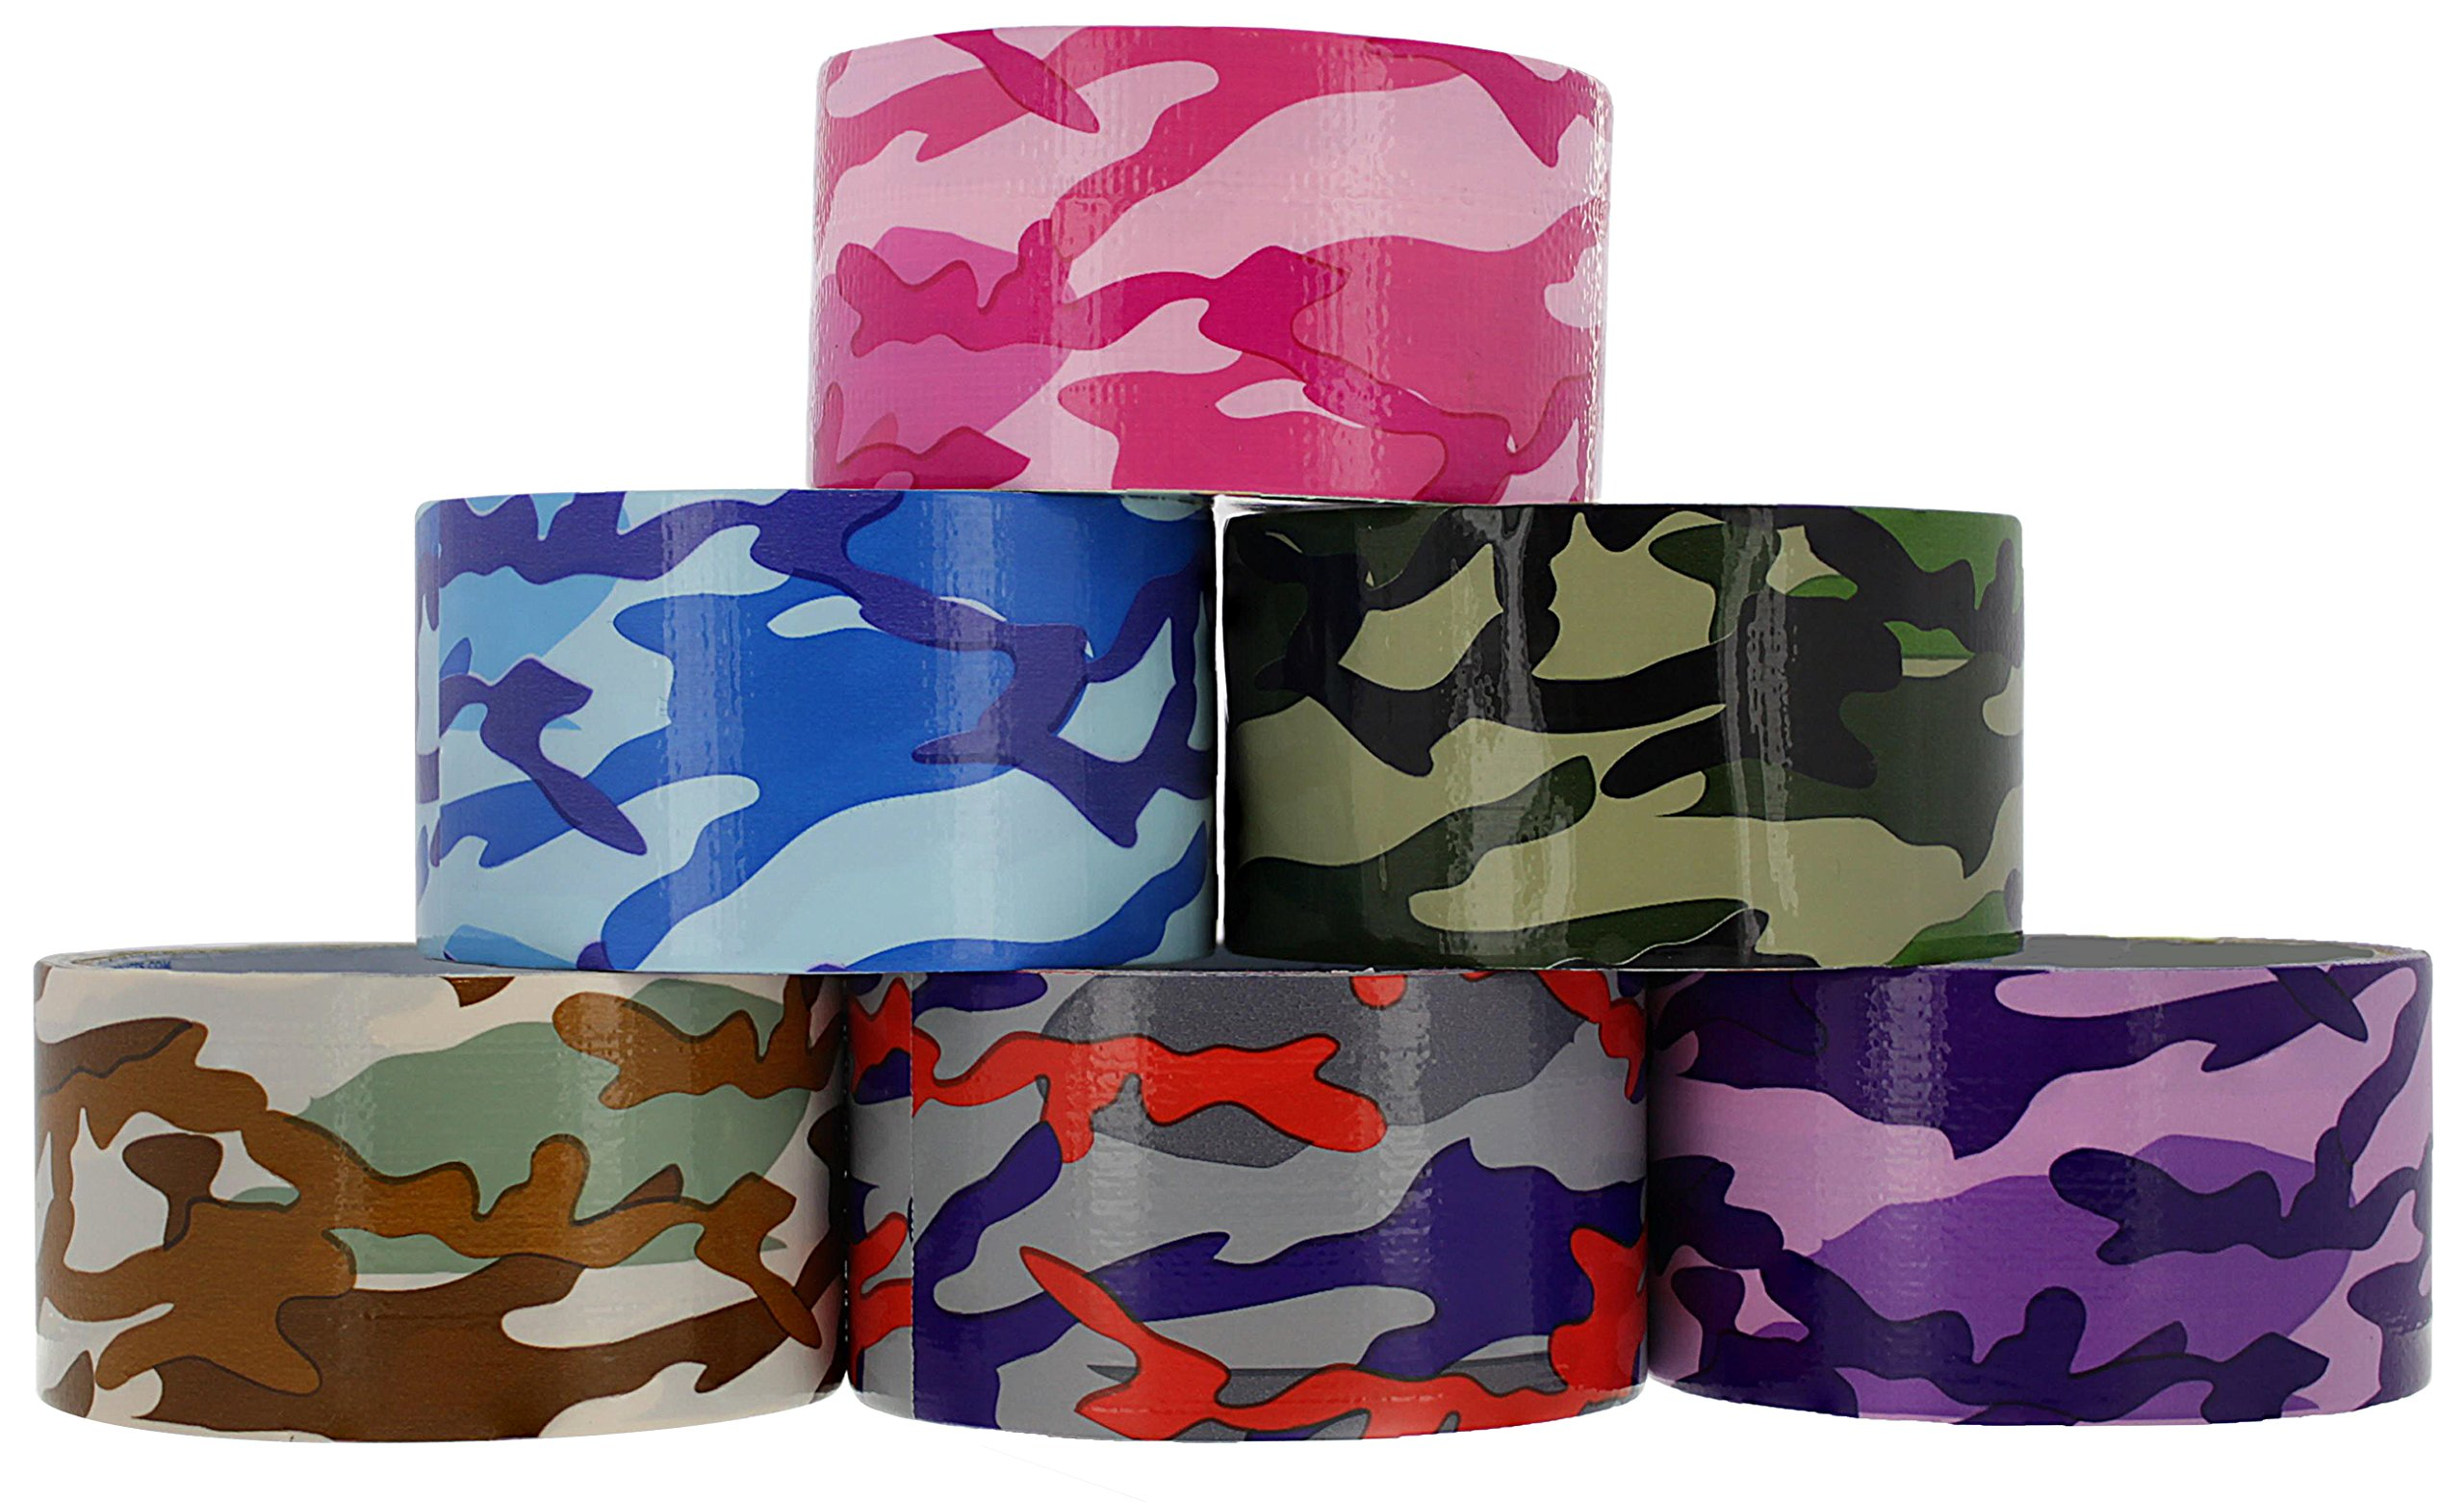 RAM-PRO Camouflage Series Heavy-Duty Duct Tape | Assorted Colors Pack of 6 Rolls, 1.88-inch x 5 Yard – Colors Included: Blue/Orange/Green, Brown/Grey, Green, Blue, Purple, Pink.